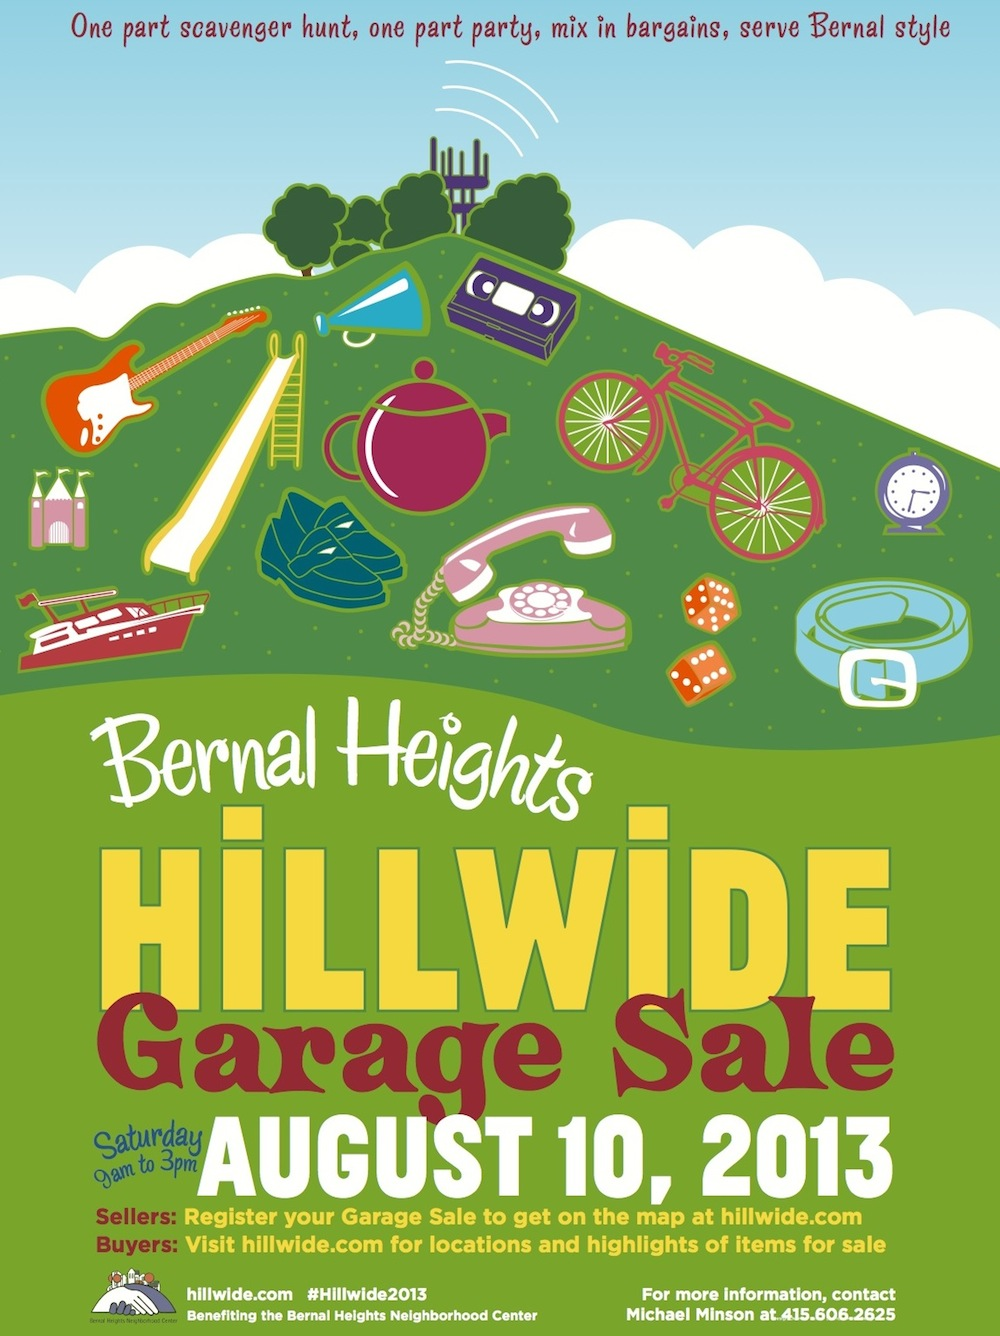 Saturday Use This HighTech Treasure Map to Plunder the 2013 Bernal Heights Hillwide Garage